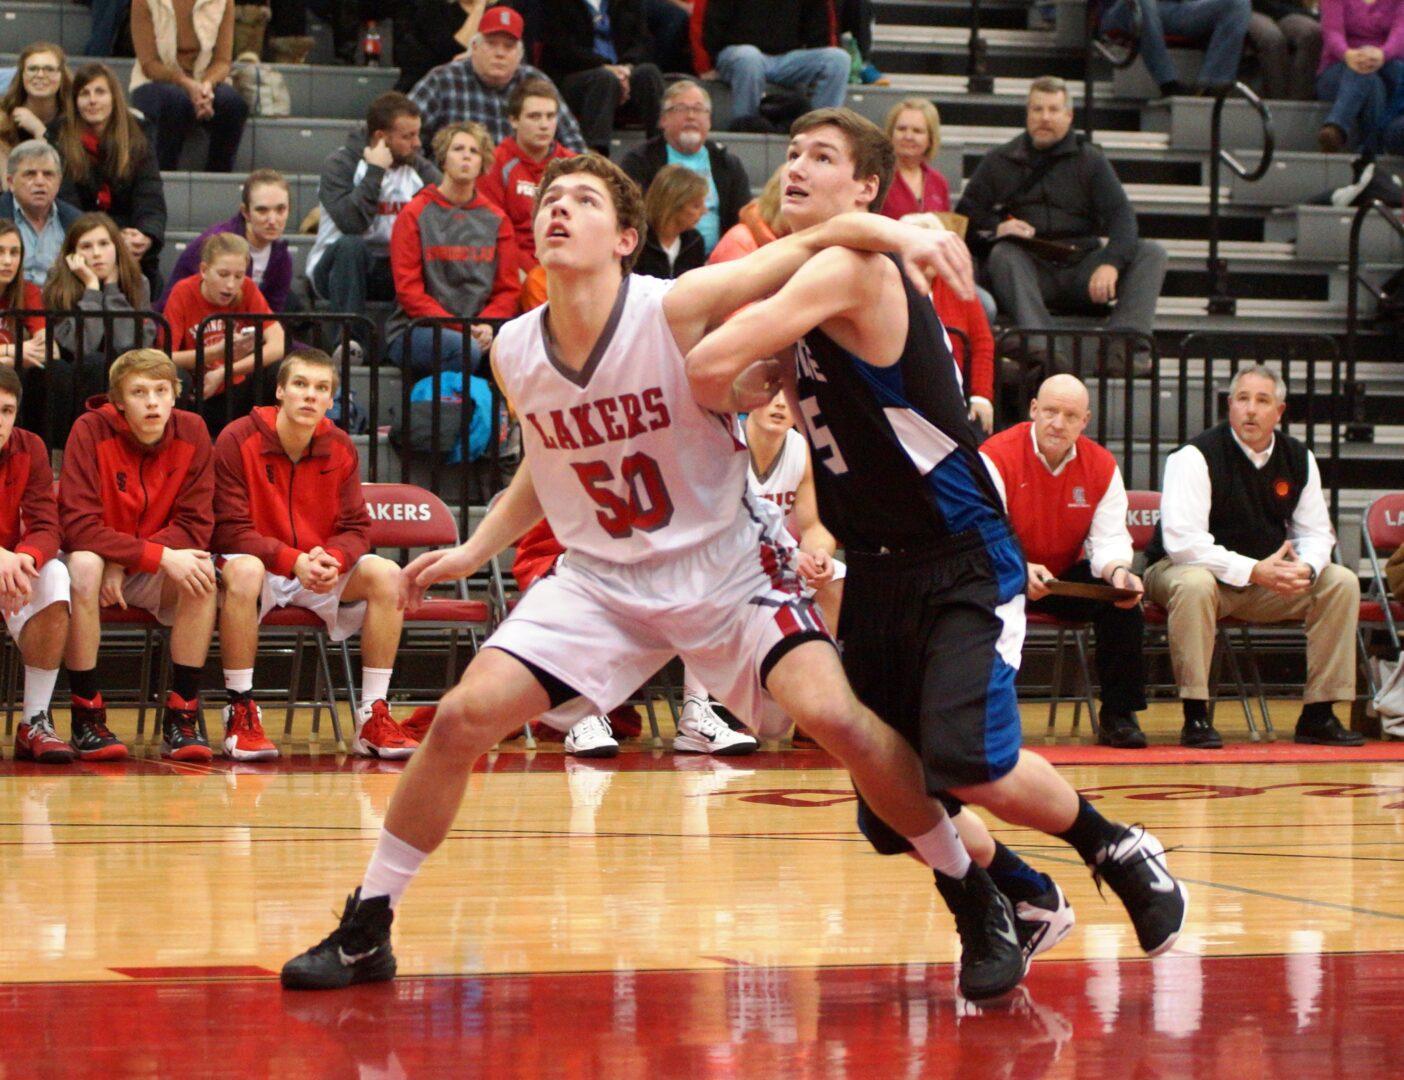 Spring Lake cruises to victory over previously undefeated Oakridge in boys basketball